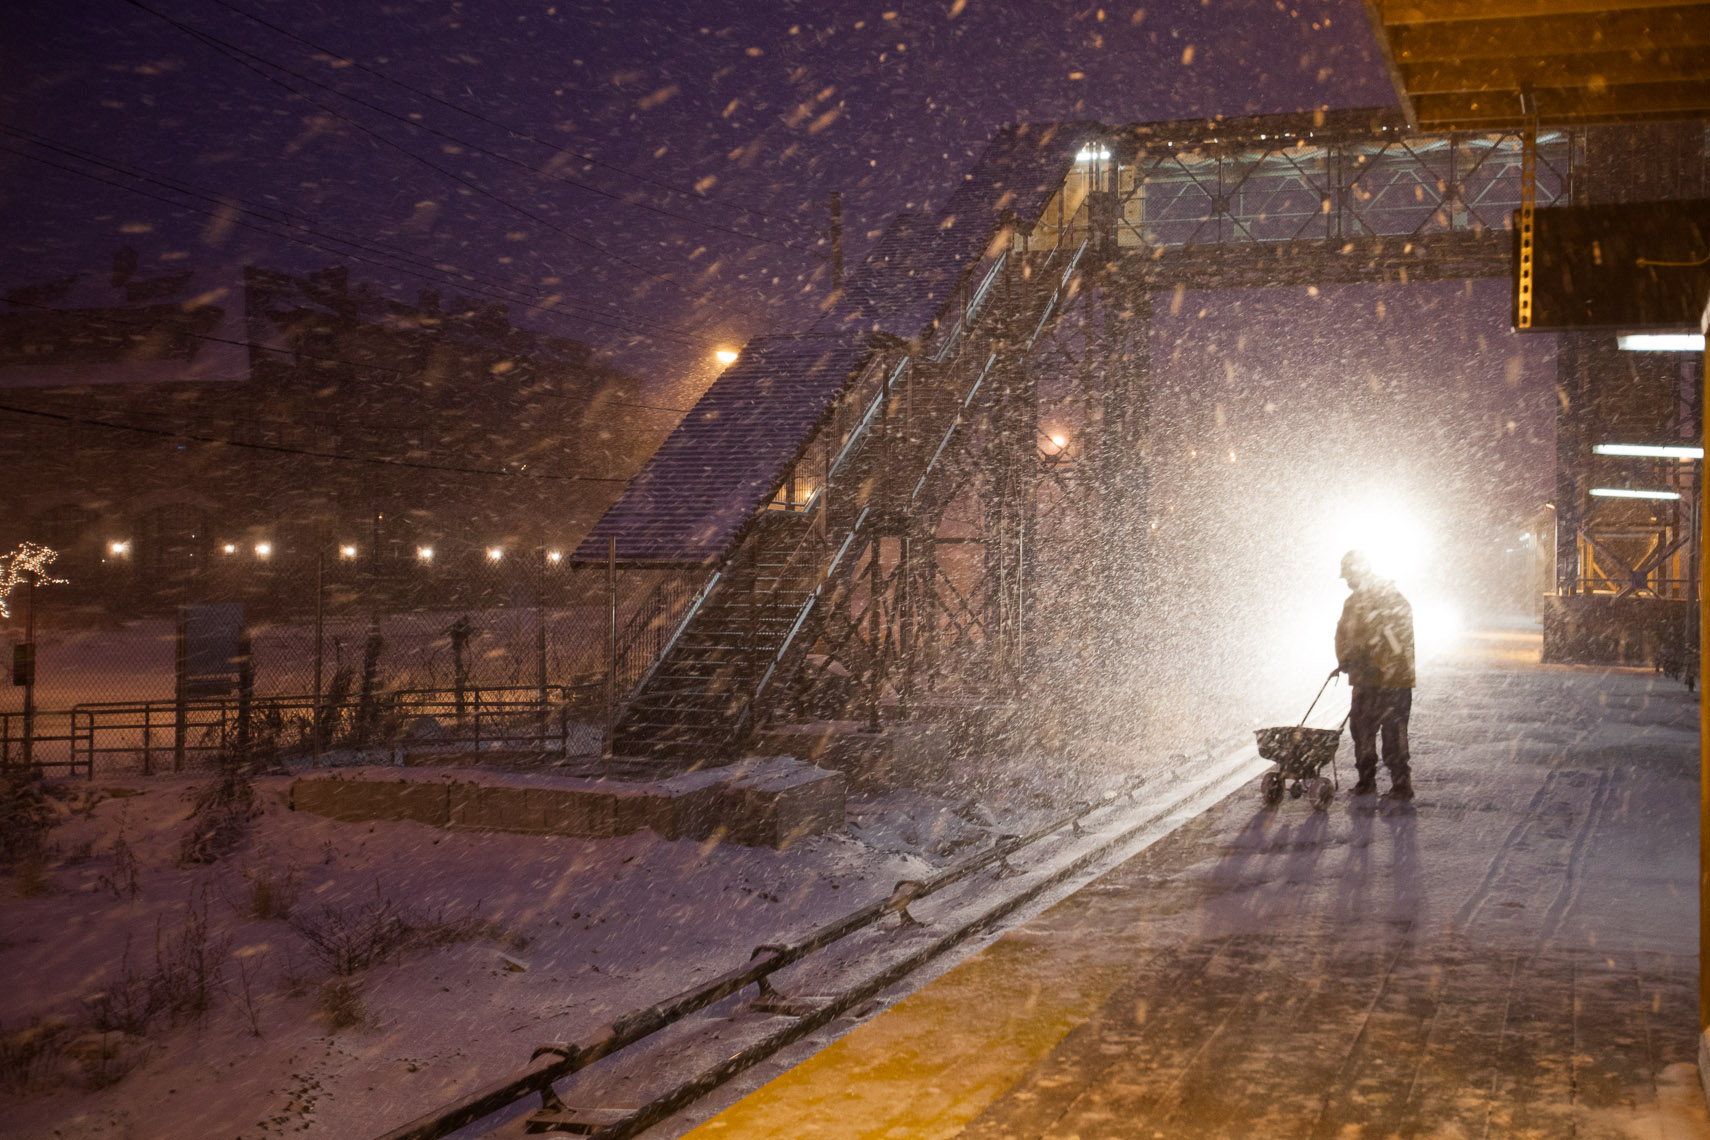 Train Station, Snow Storm